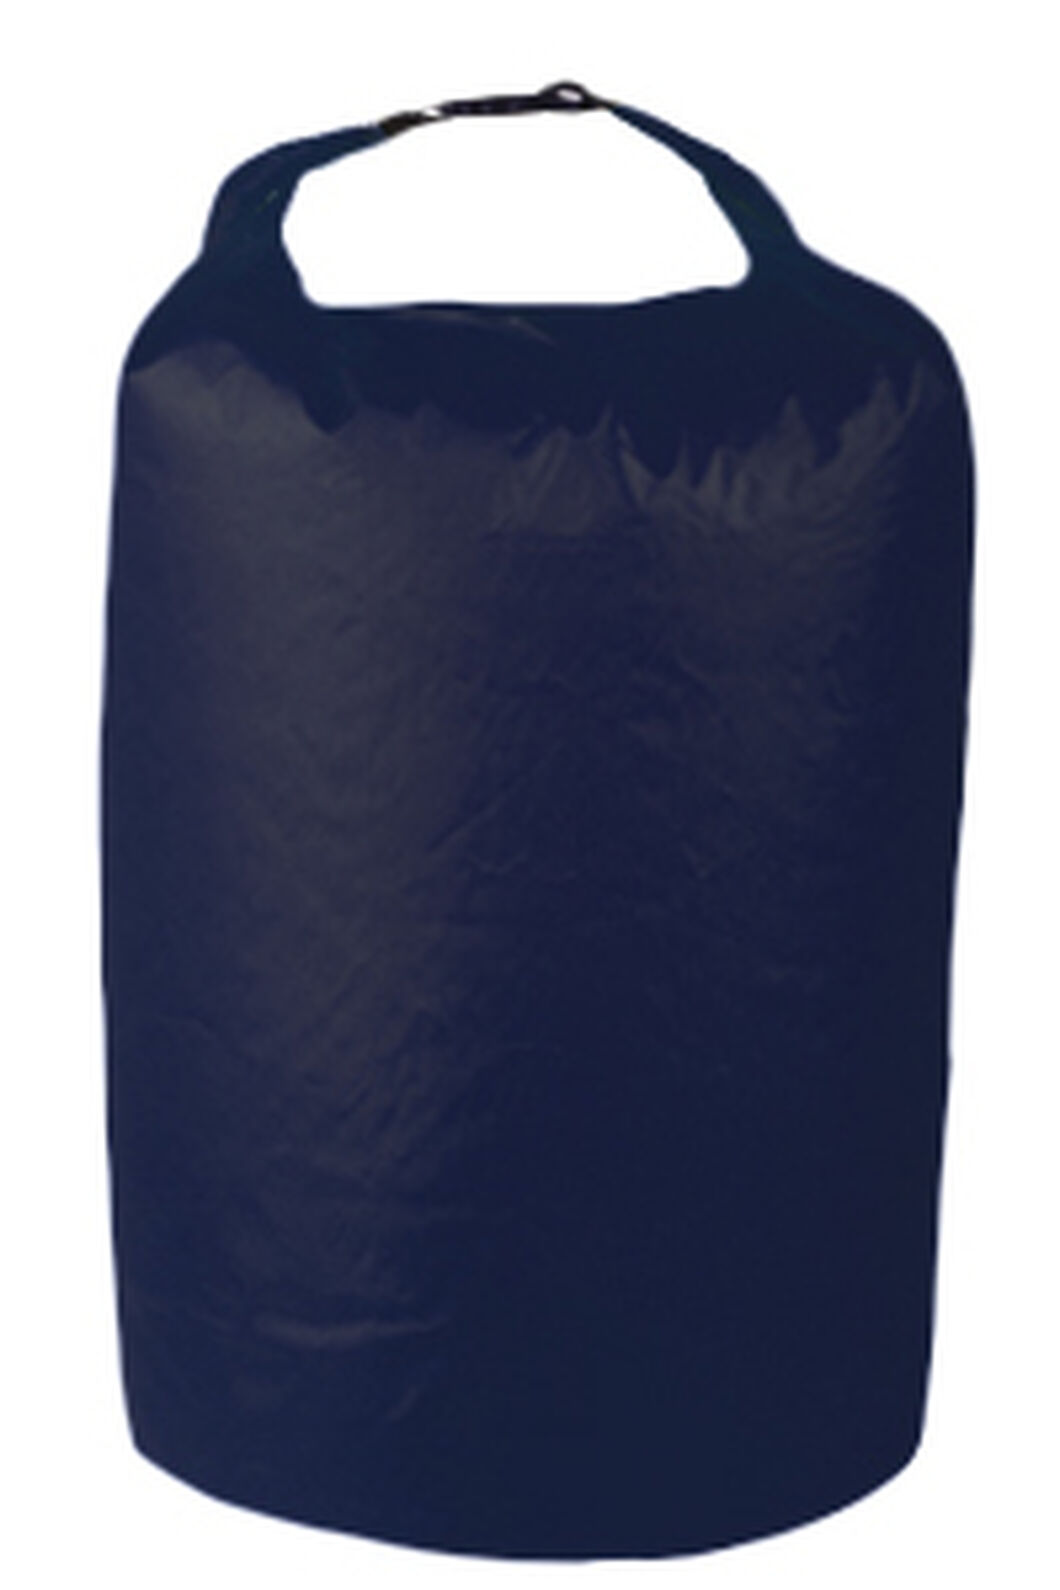 Macpac Ultralight Dry Bag 10 L, Sodalite Blue, hi-res